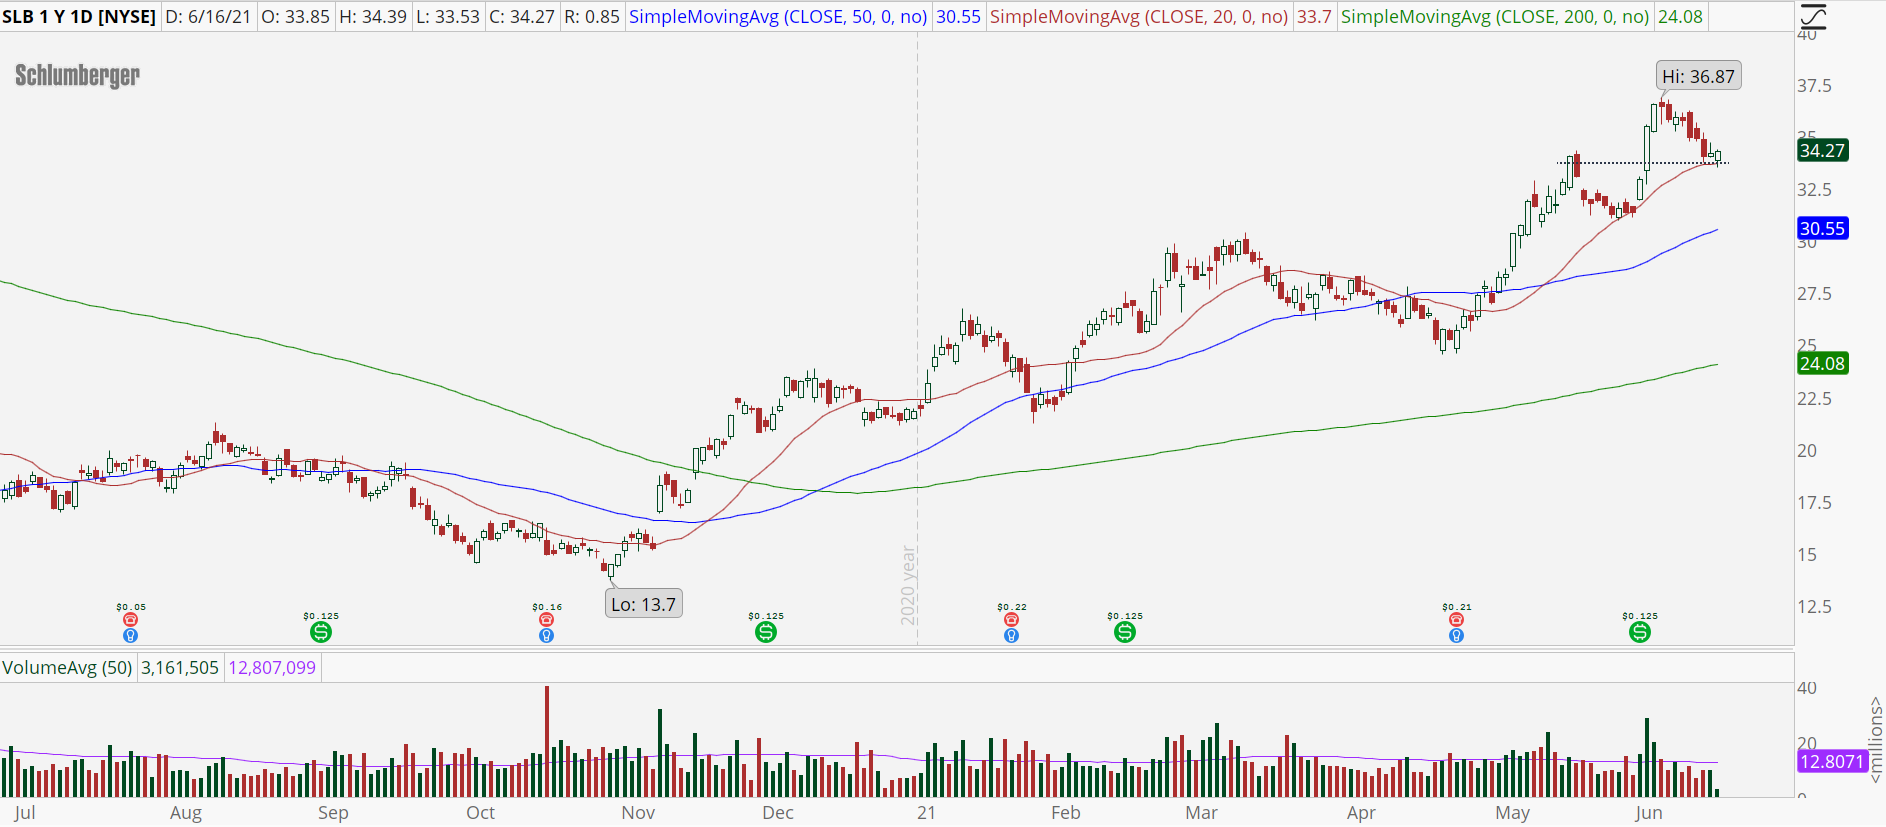 Schlumberger (SLB) stock chart with bull retracement pattern